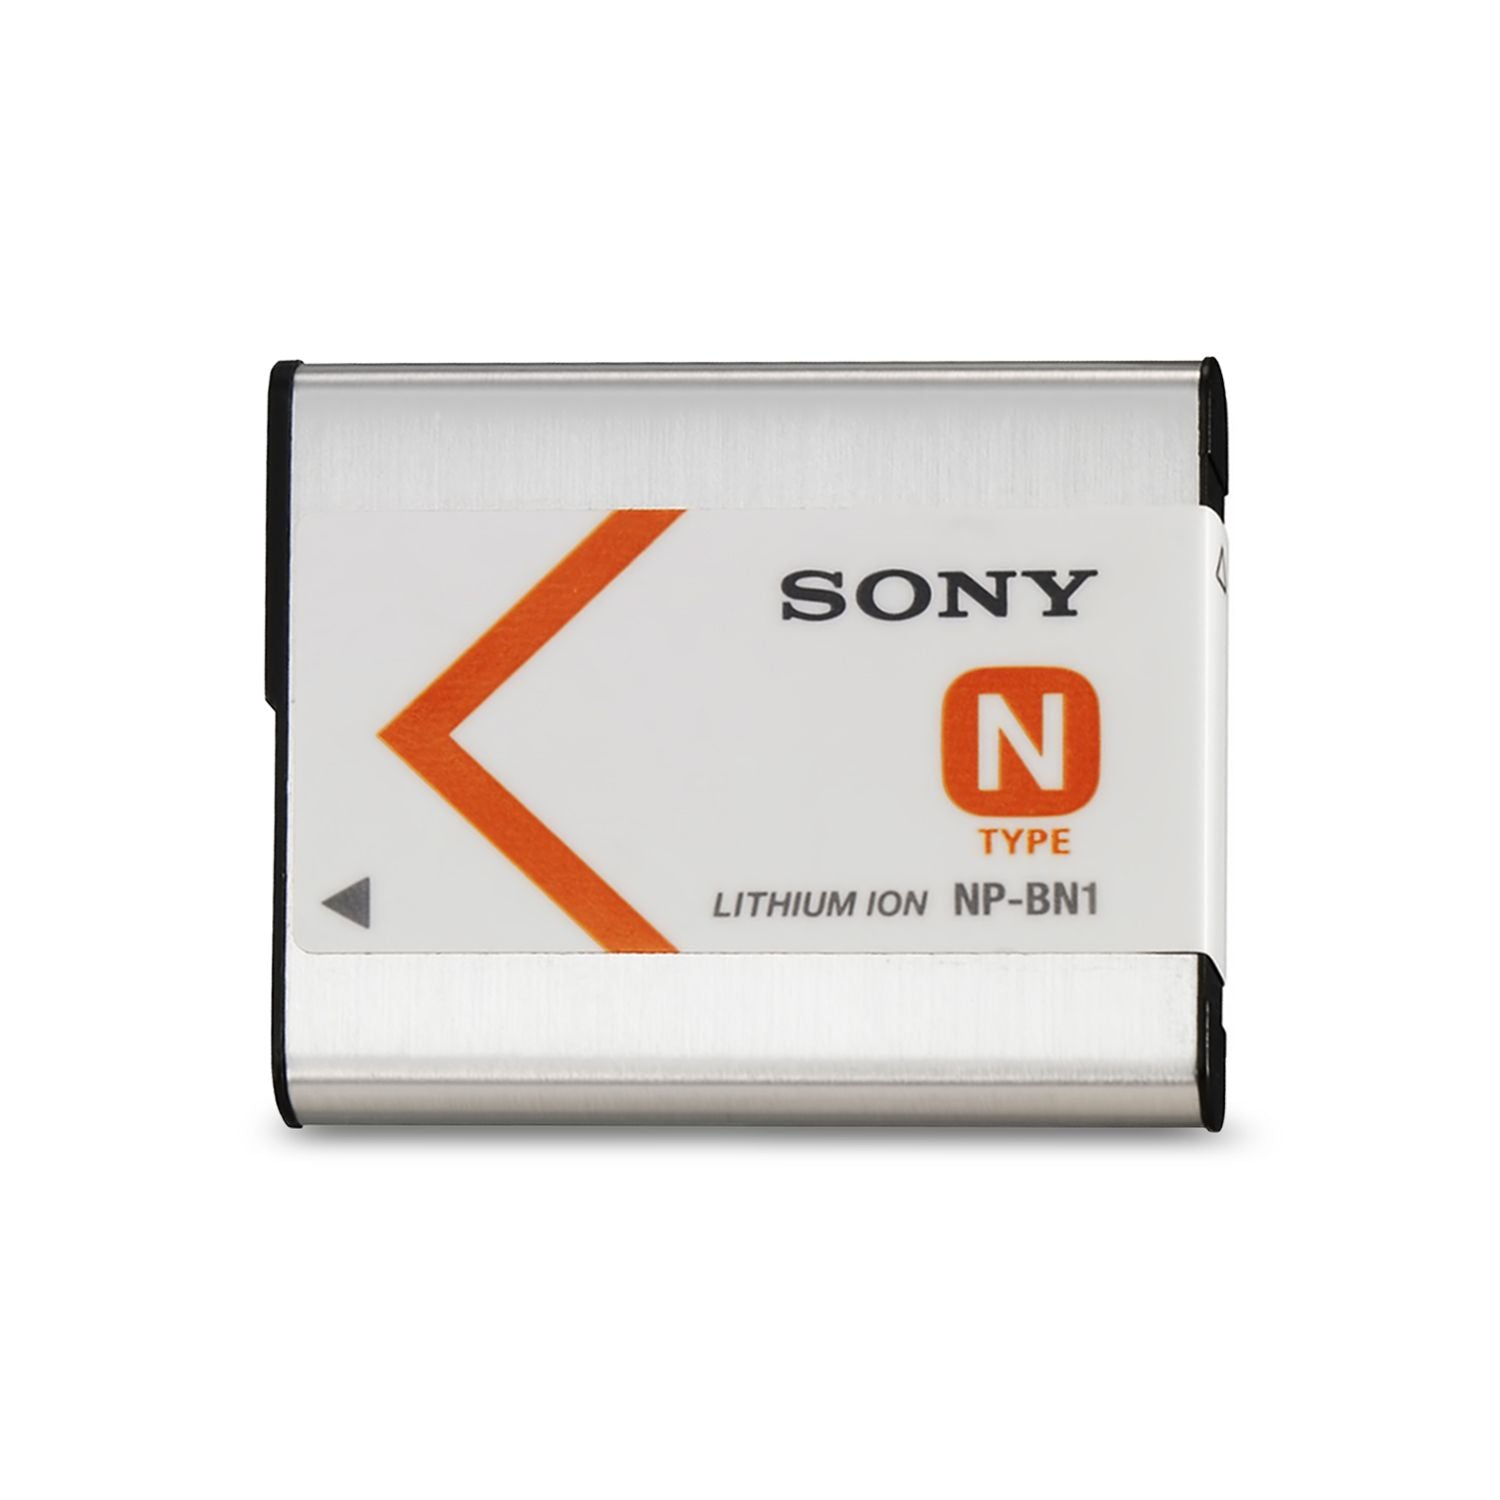 Sony - NP-BN1 Lithium-Ion Battery